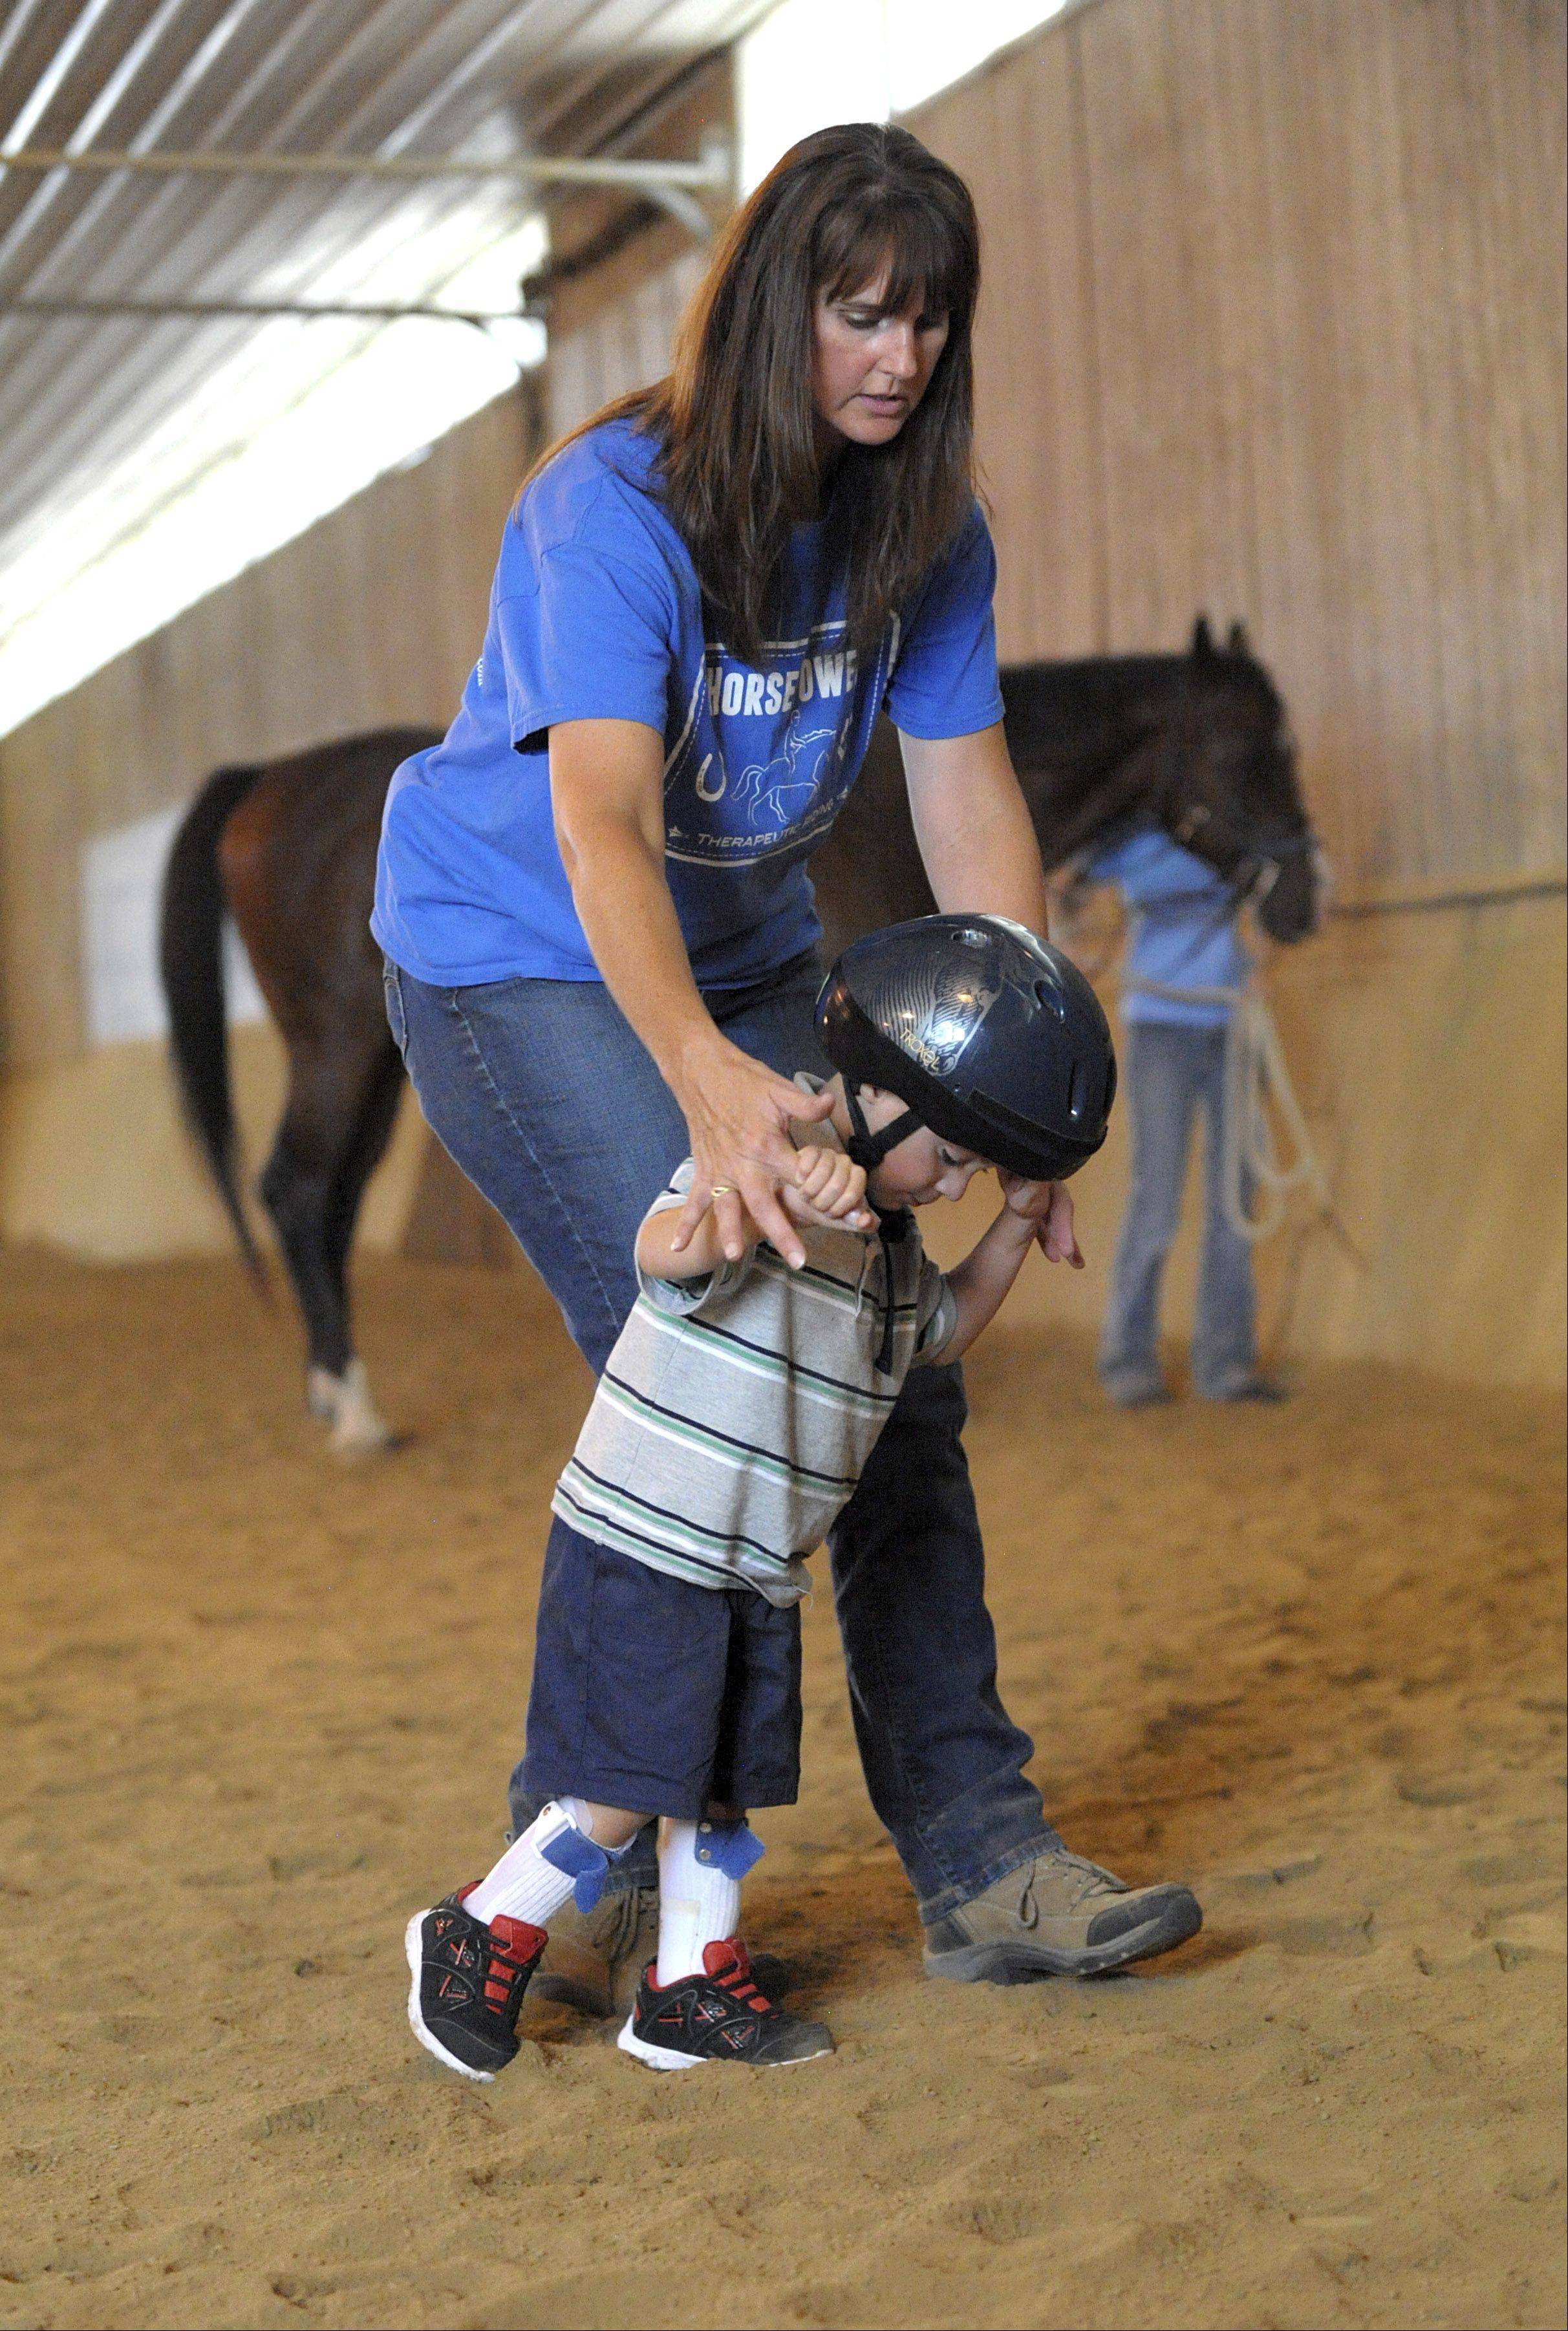 Carrie Capes helps student Trevin Kuhl, 4, of Sycamore walk back to a platform after dismounting his therapy horse, Ronan. The last activity of every session involves the student making a treat for their horse. The program is located at Fox Chase Farms in Maple Park.